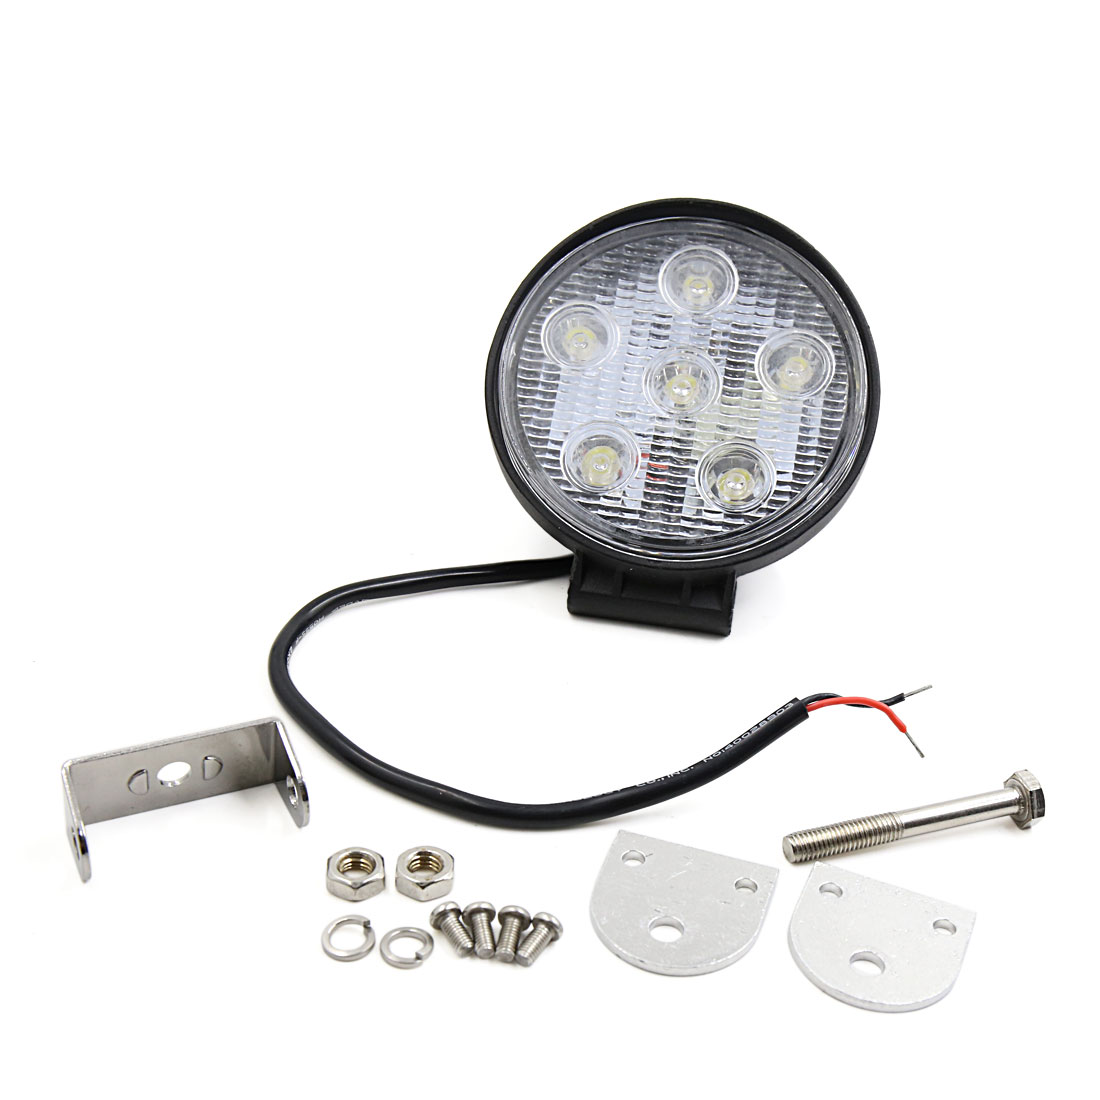 "5"" 18W 6 White LED 6000K Flood Beam Car Work Light Driving Lamp for Offroad Truck SUV ATV"